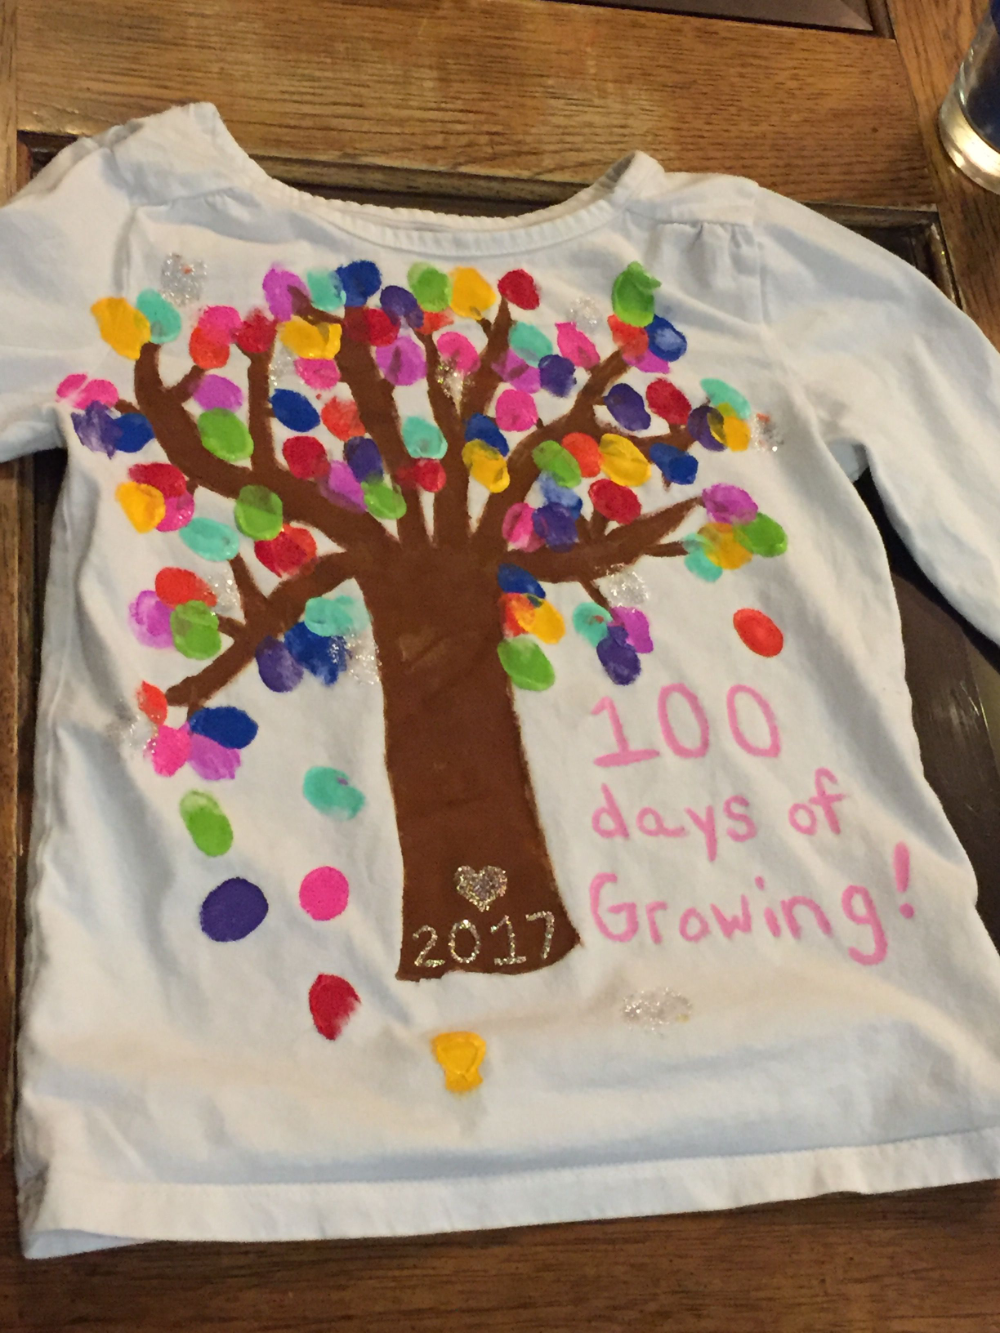 100 days of school shirt project - Google Search #100daysofschoolproject 100 days of school shirt